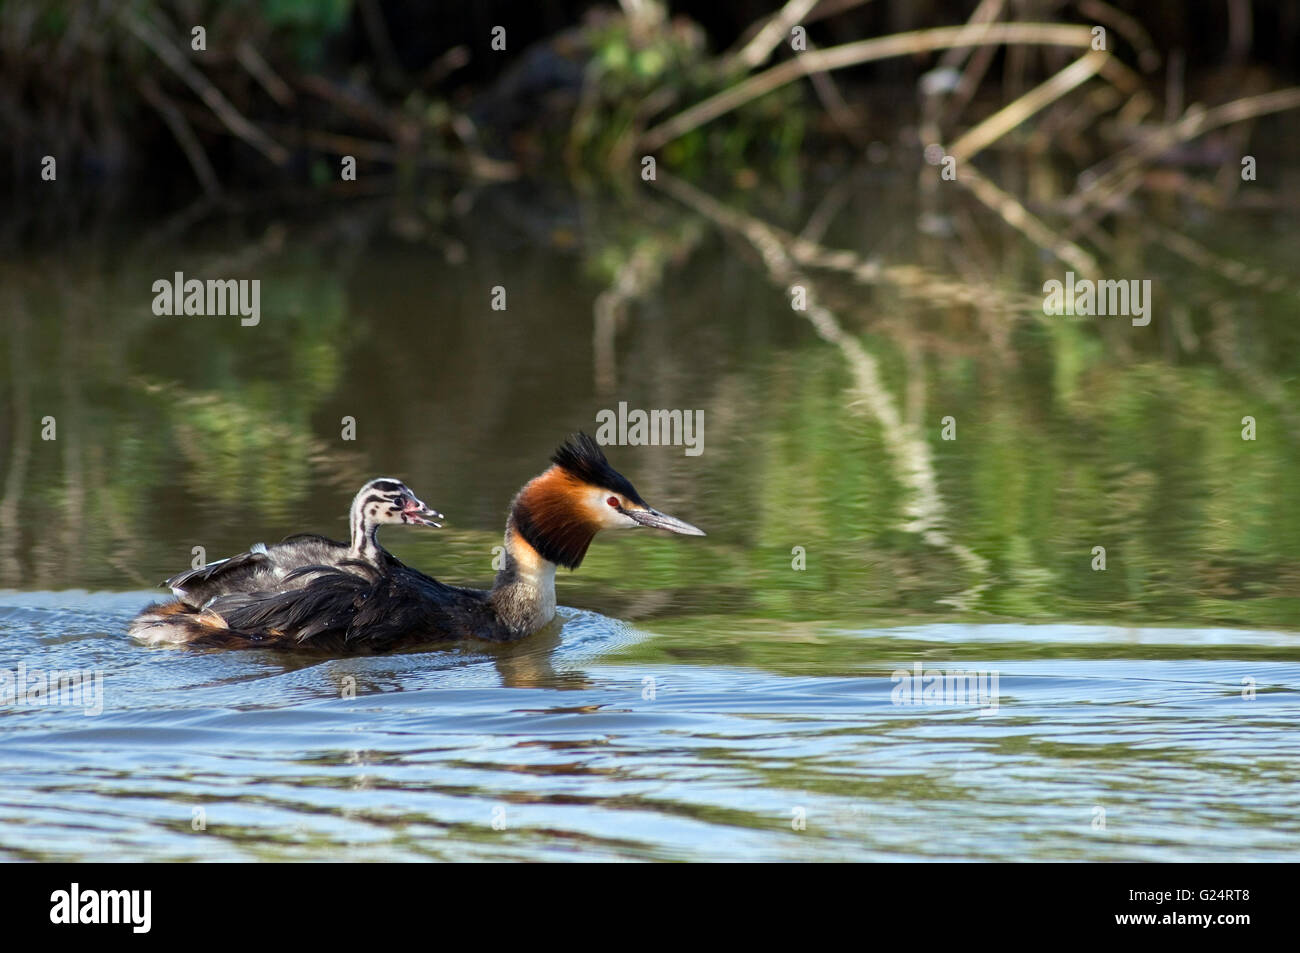 Great crested grebe (Podiceps cristatus) swimming in pond while carrying chick on its back - Stock Image